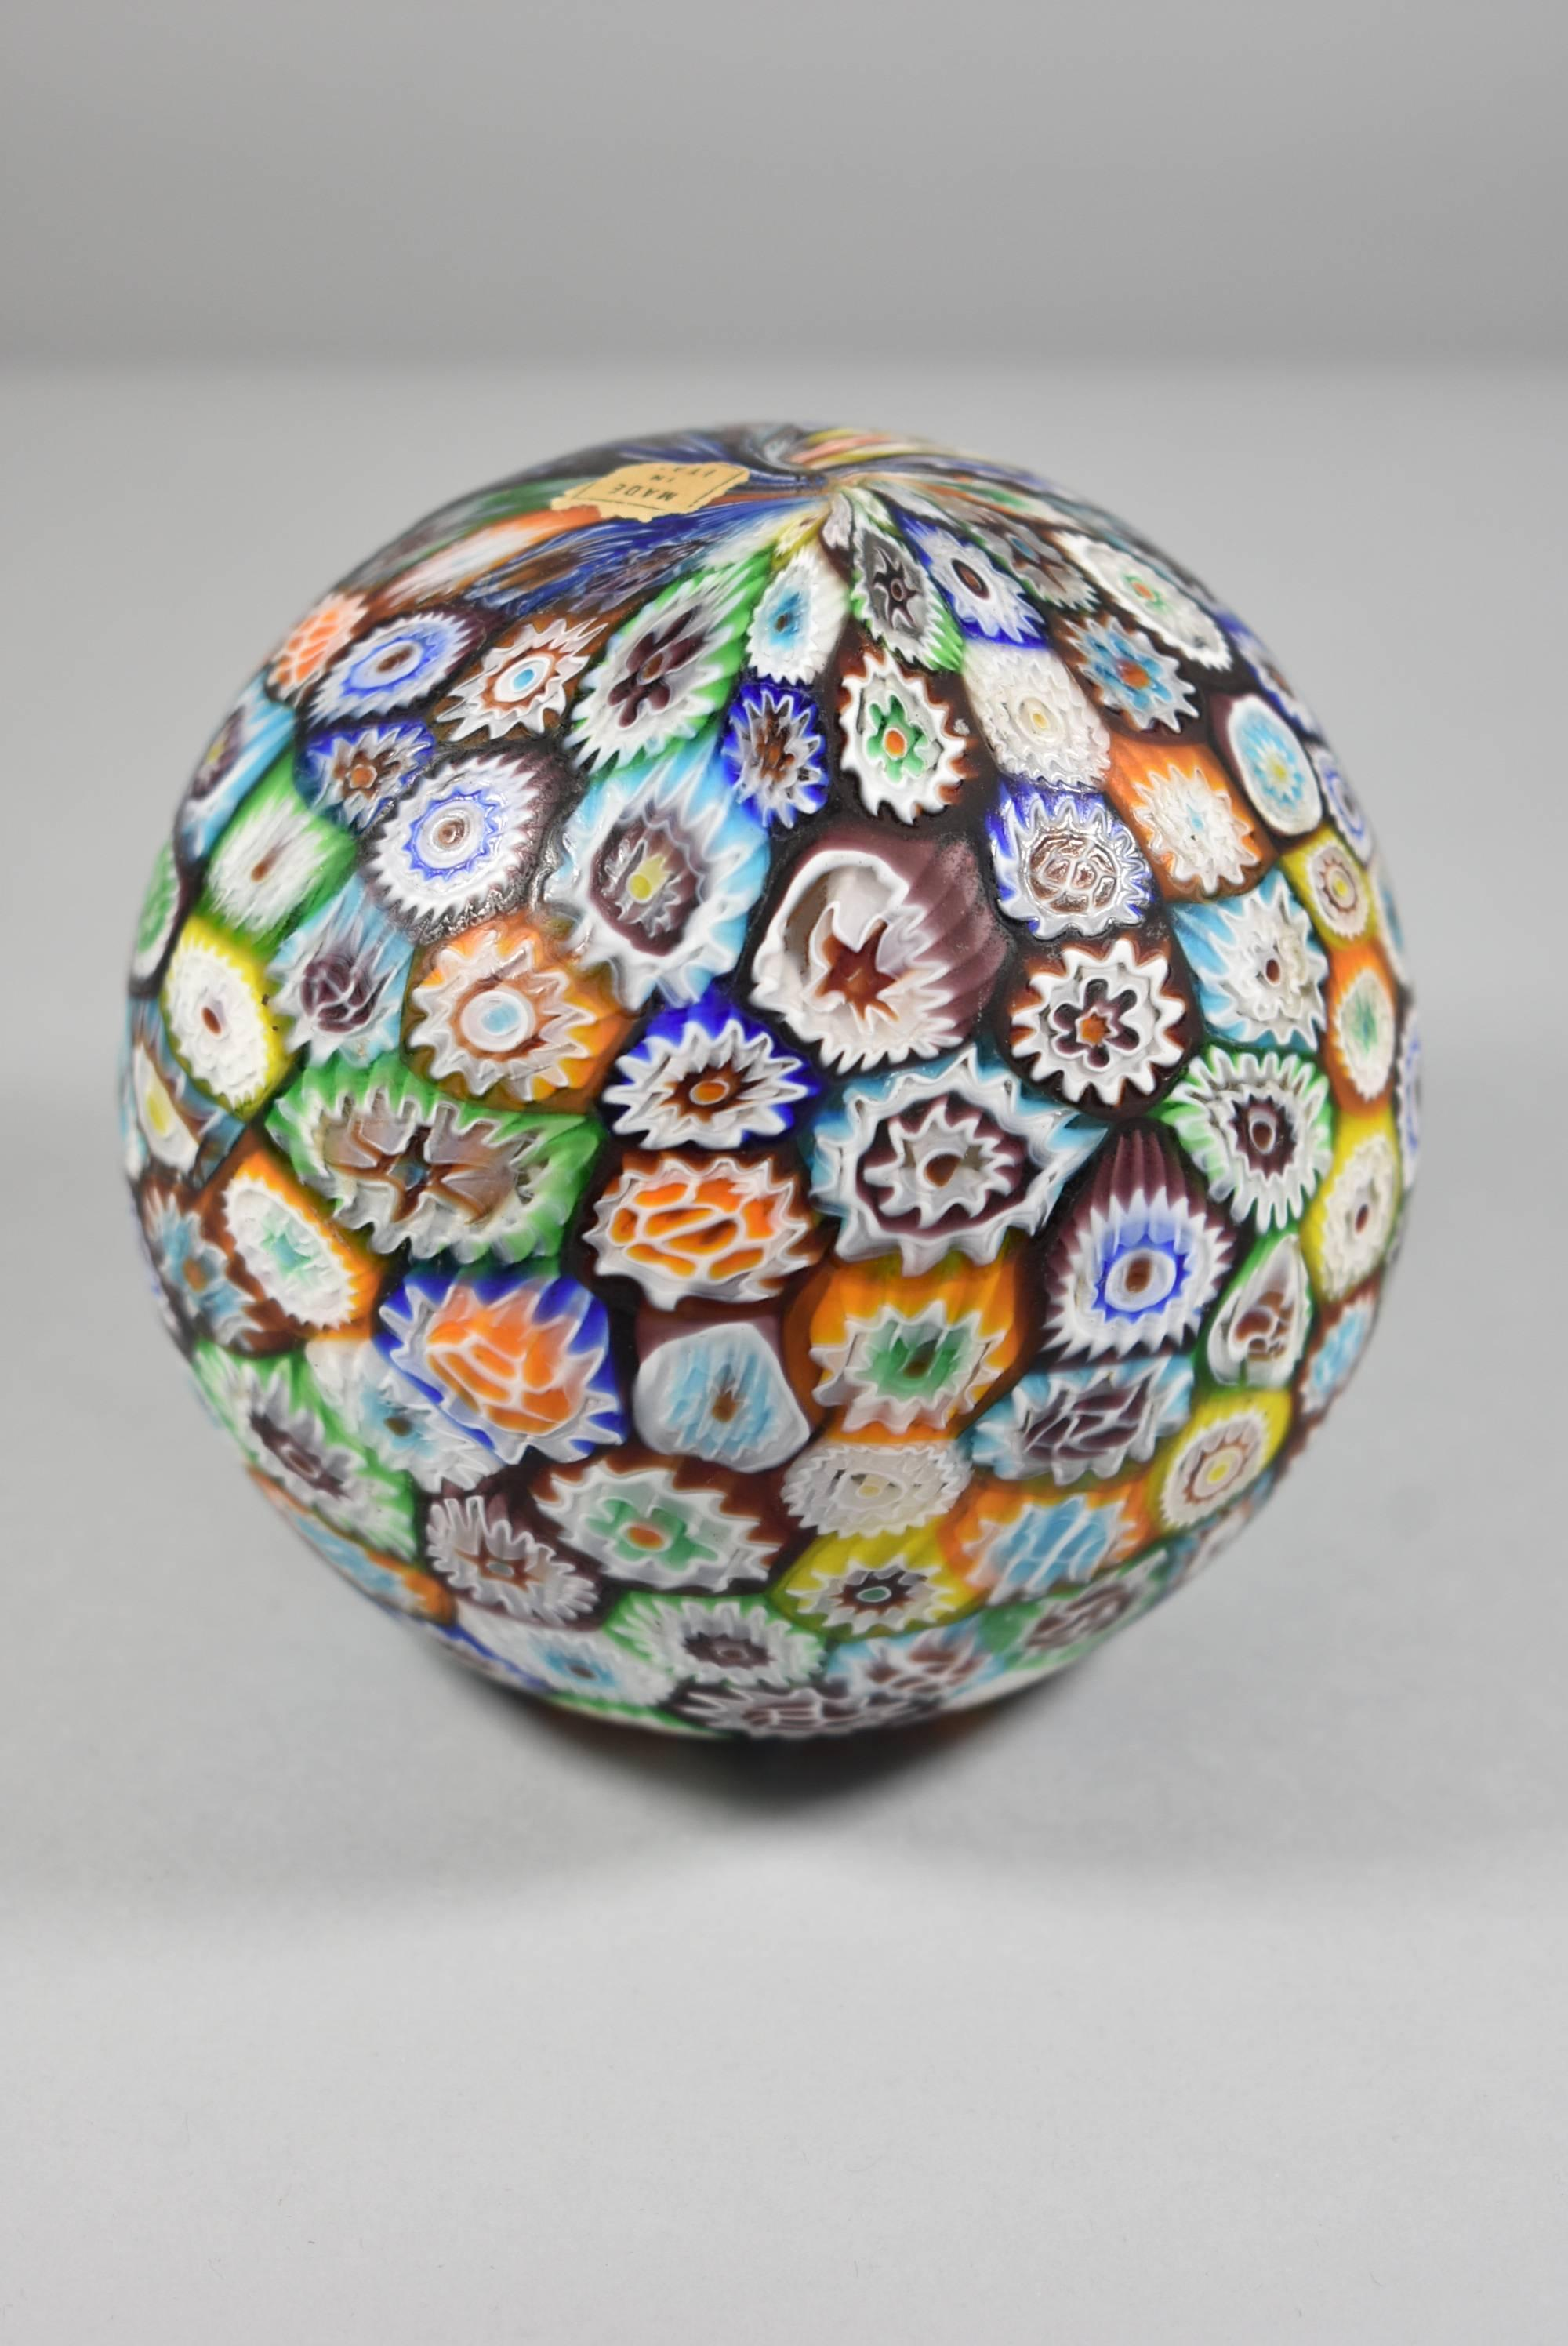 Elephant Single Socket Table Lamp Italian Murano Millefiori Glass Shade Globe At 1stdibs